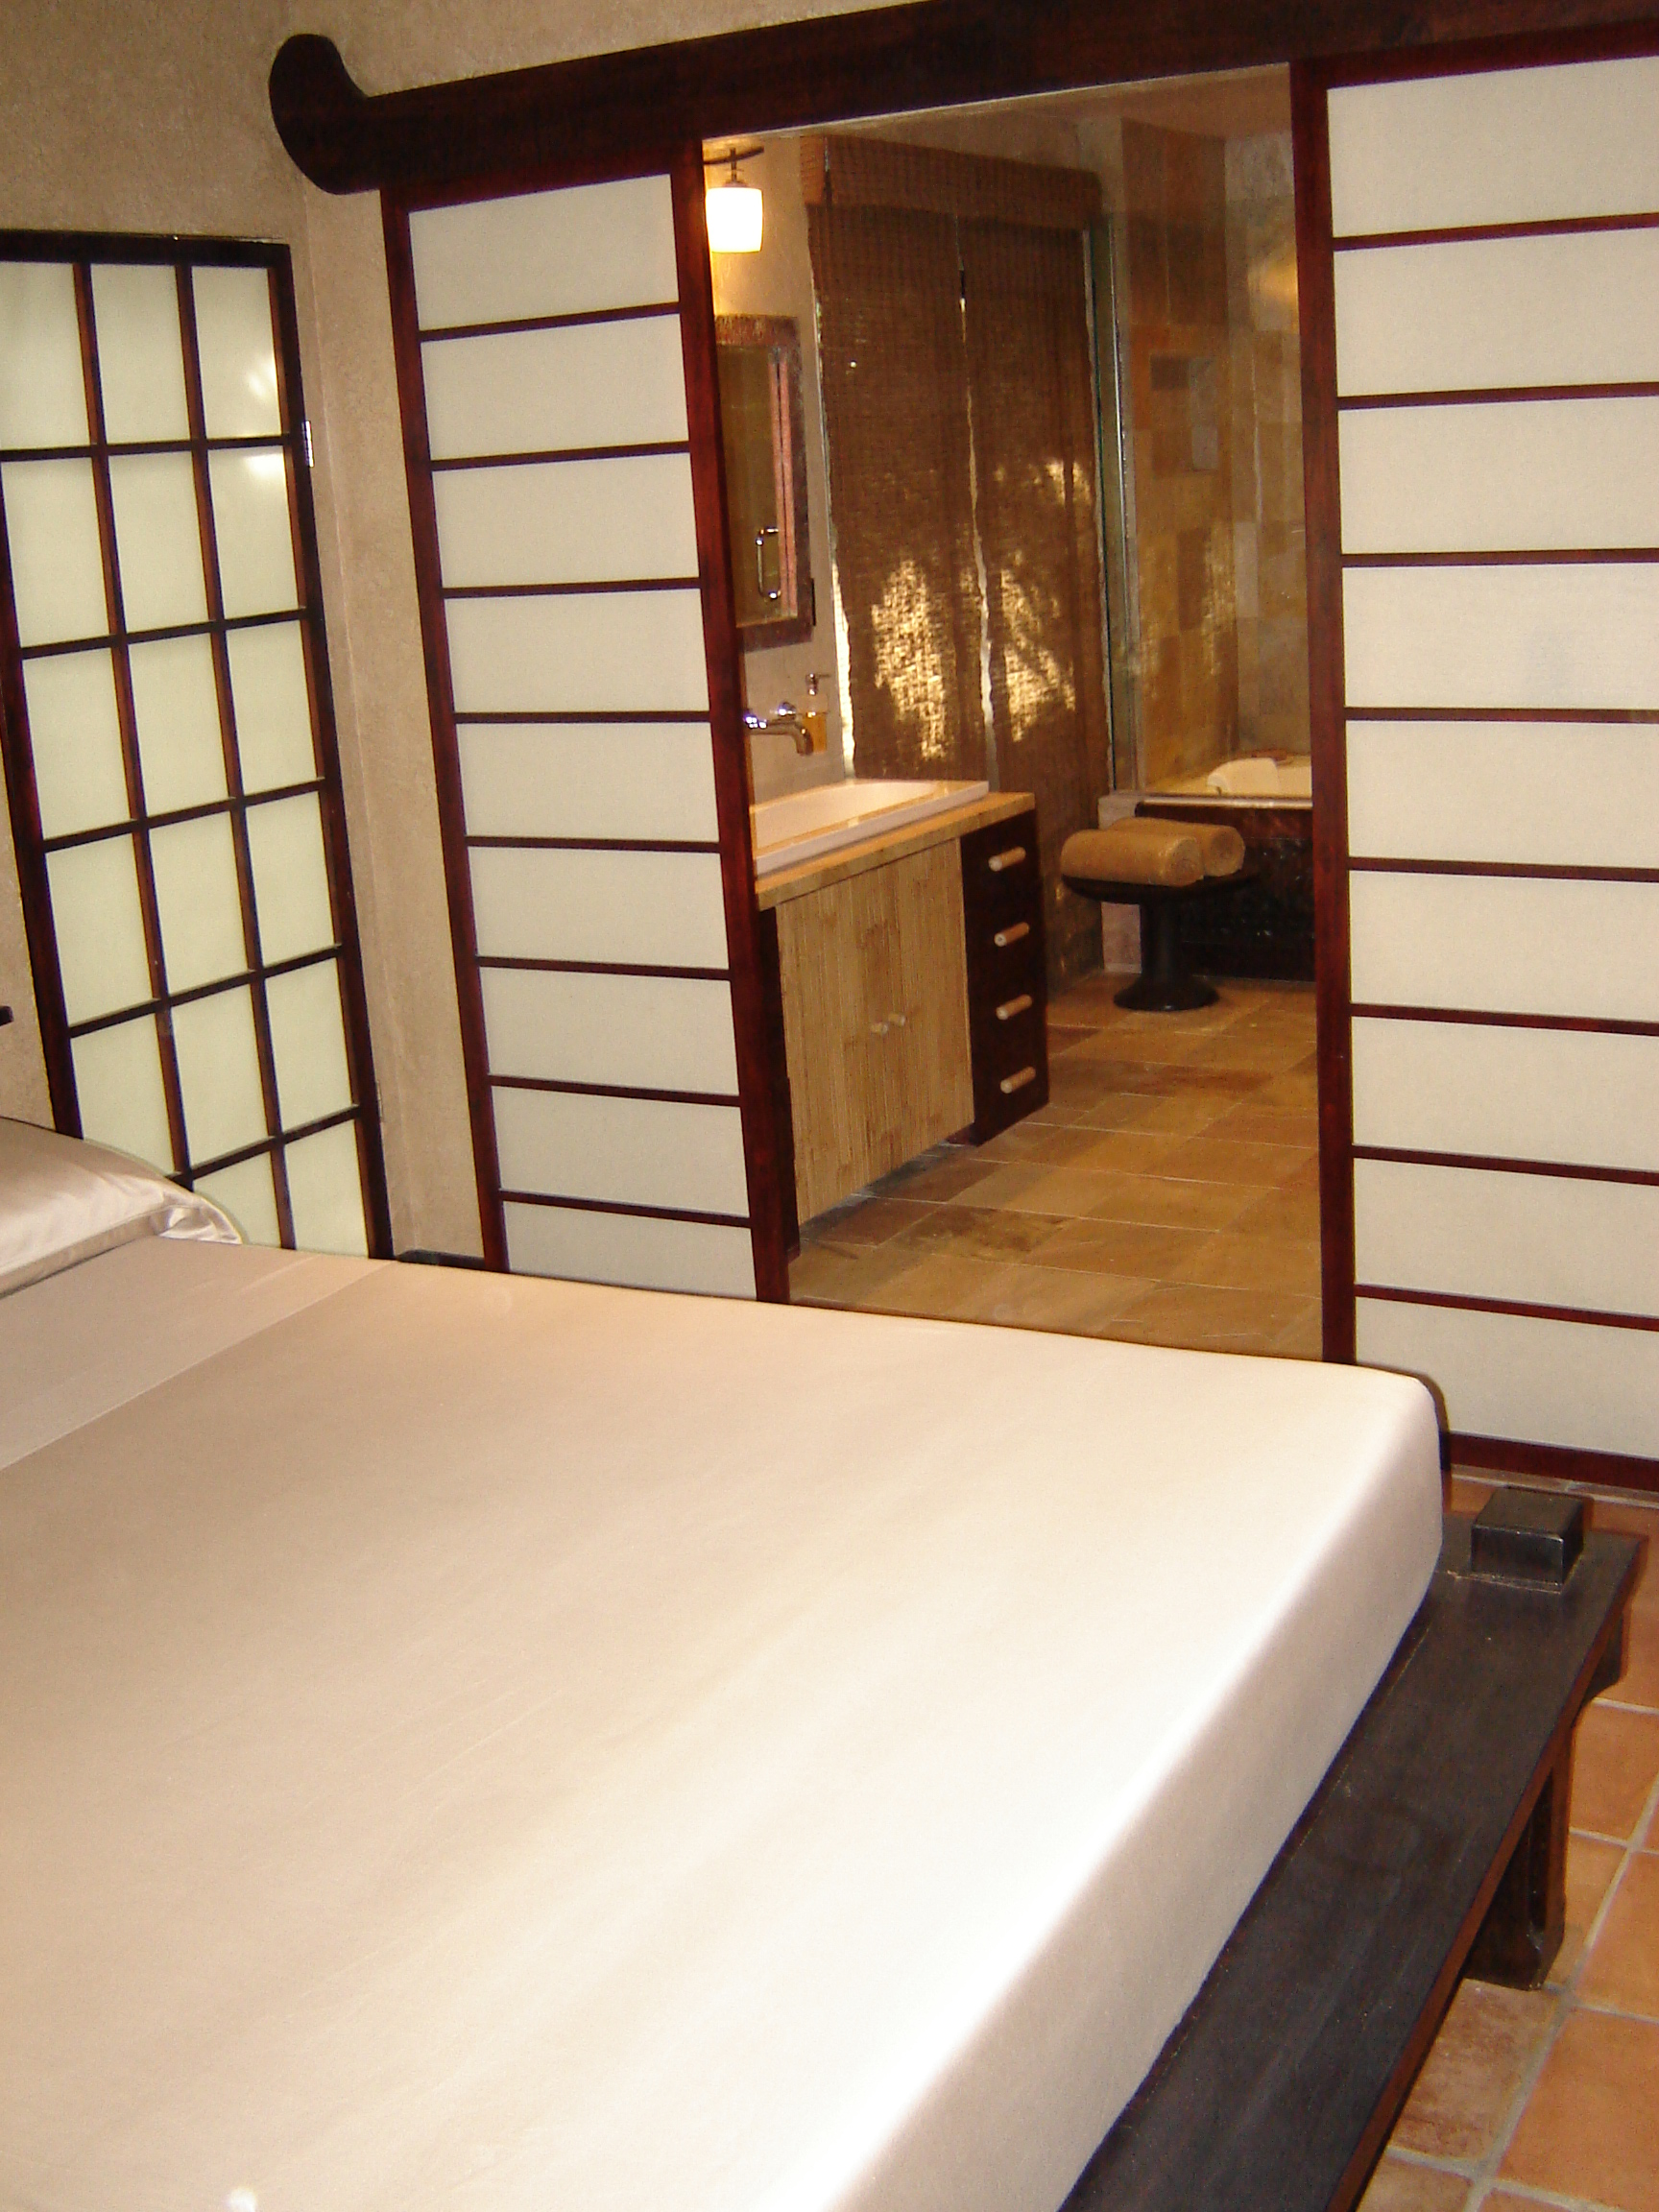 custom shoji sliding screen and window treatment and finishes